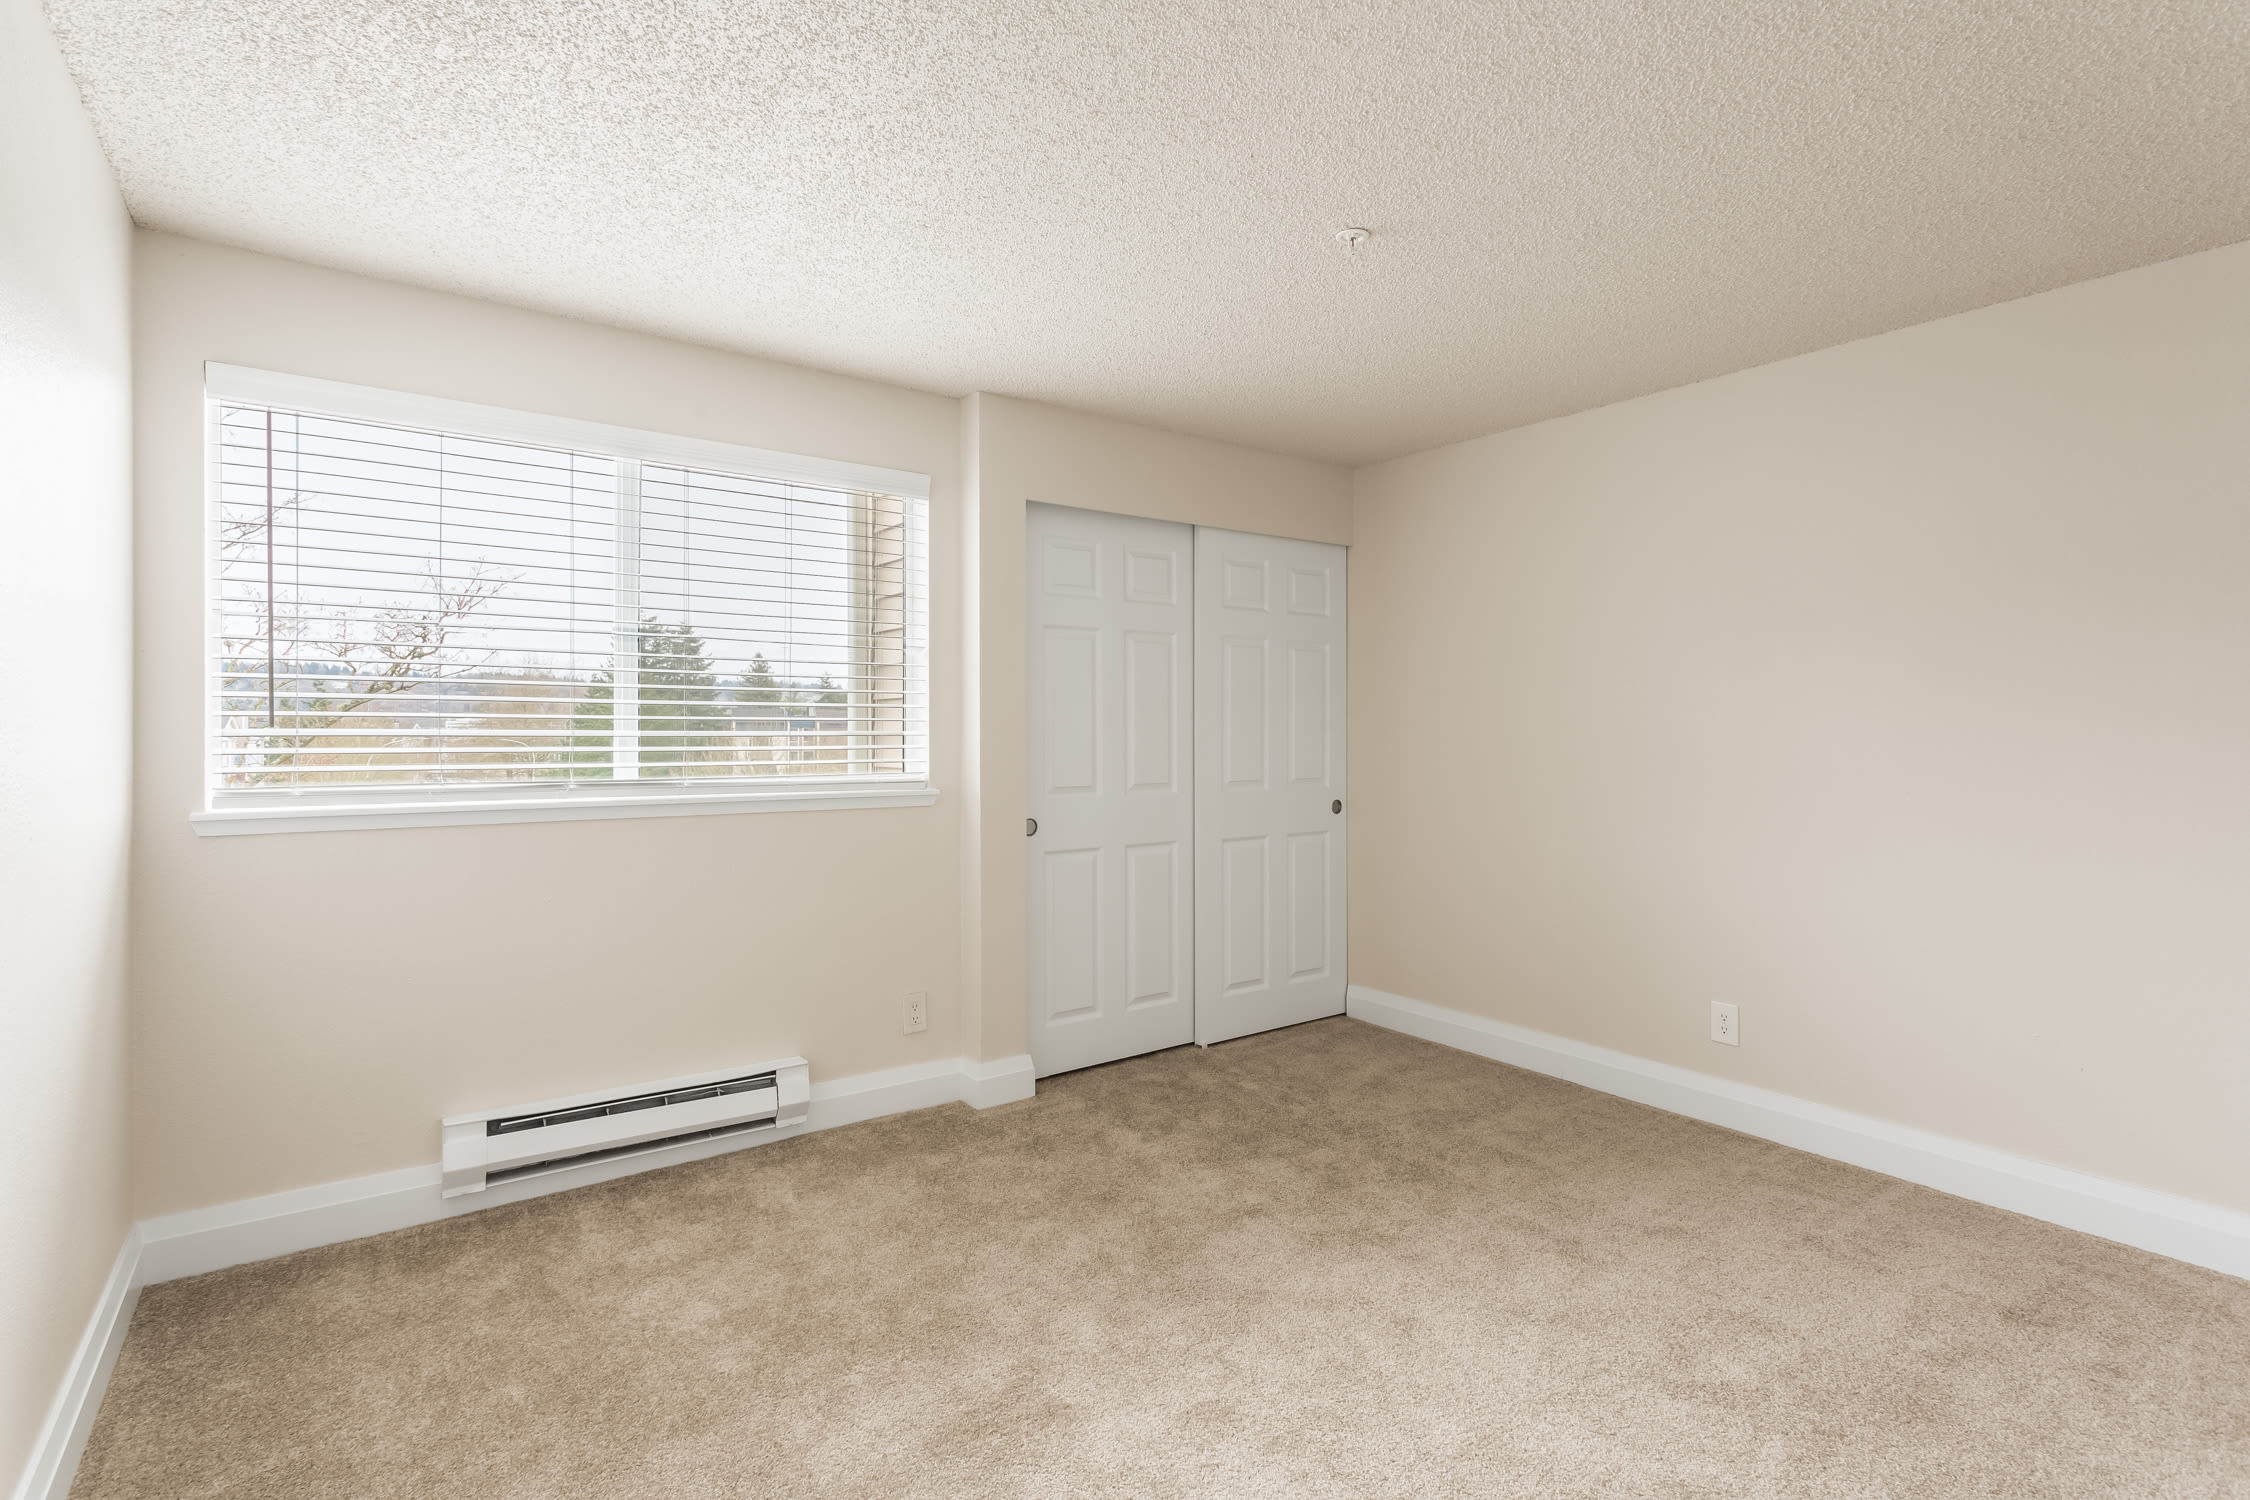 Spacious bedroom of Alaire Apartments in Renton, Washington